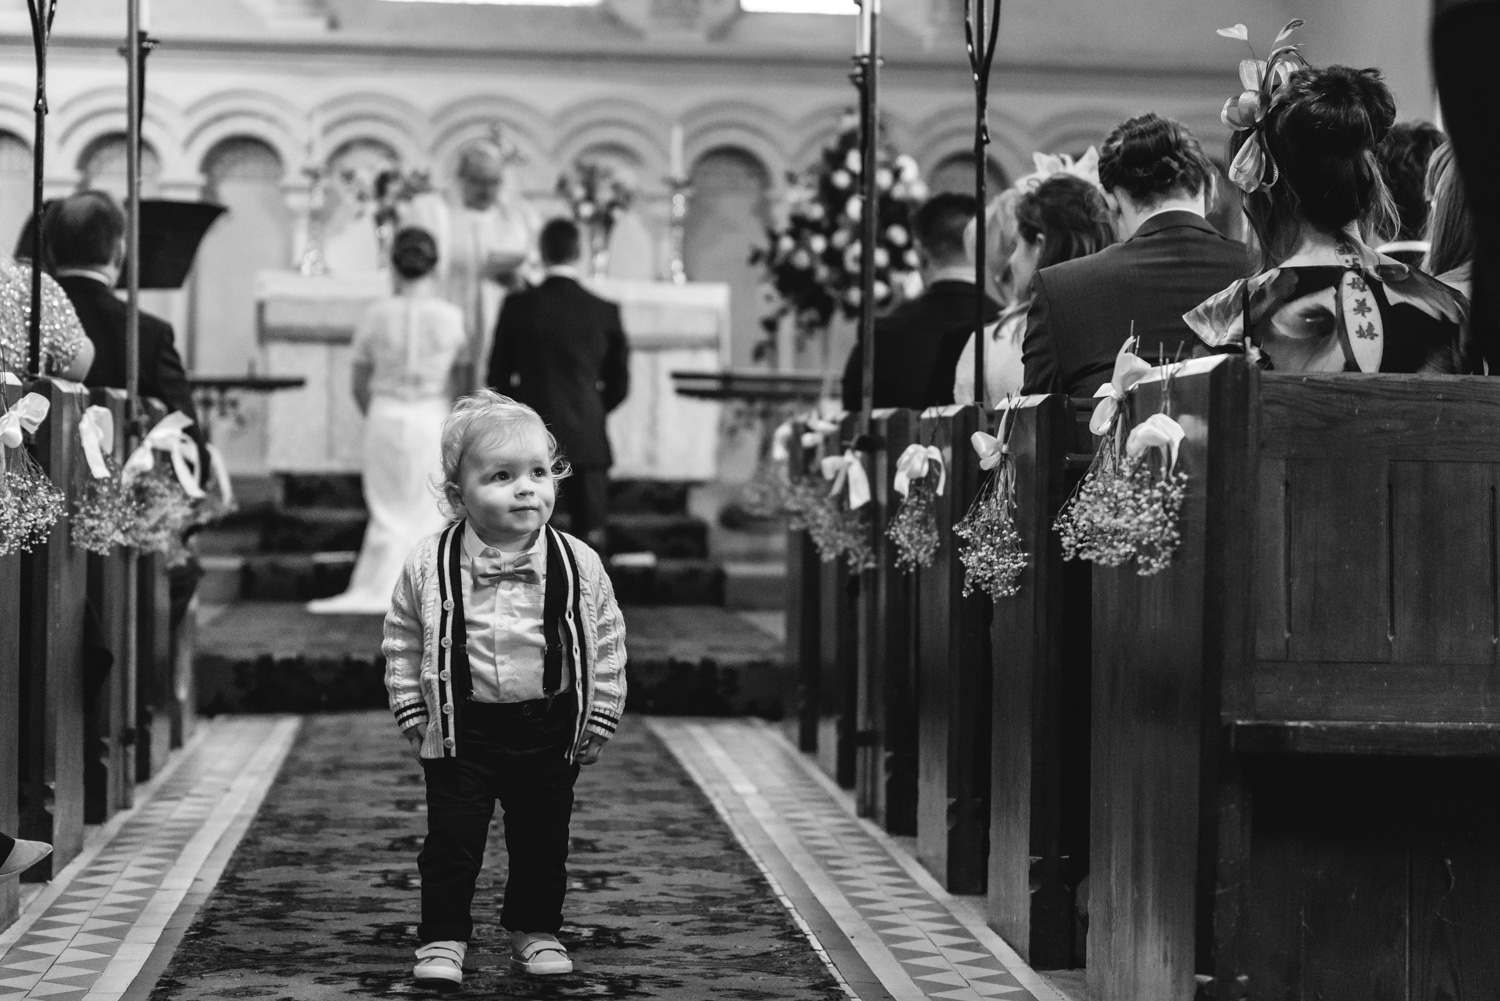 Toddler in church aisle during wedding